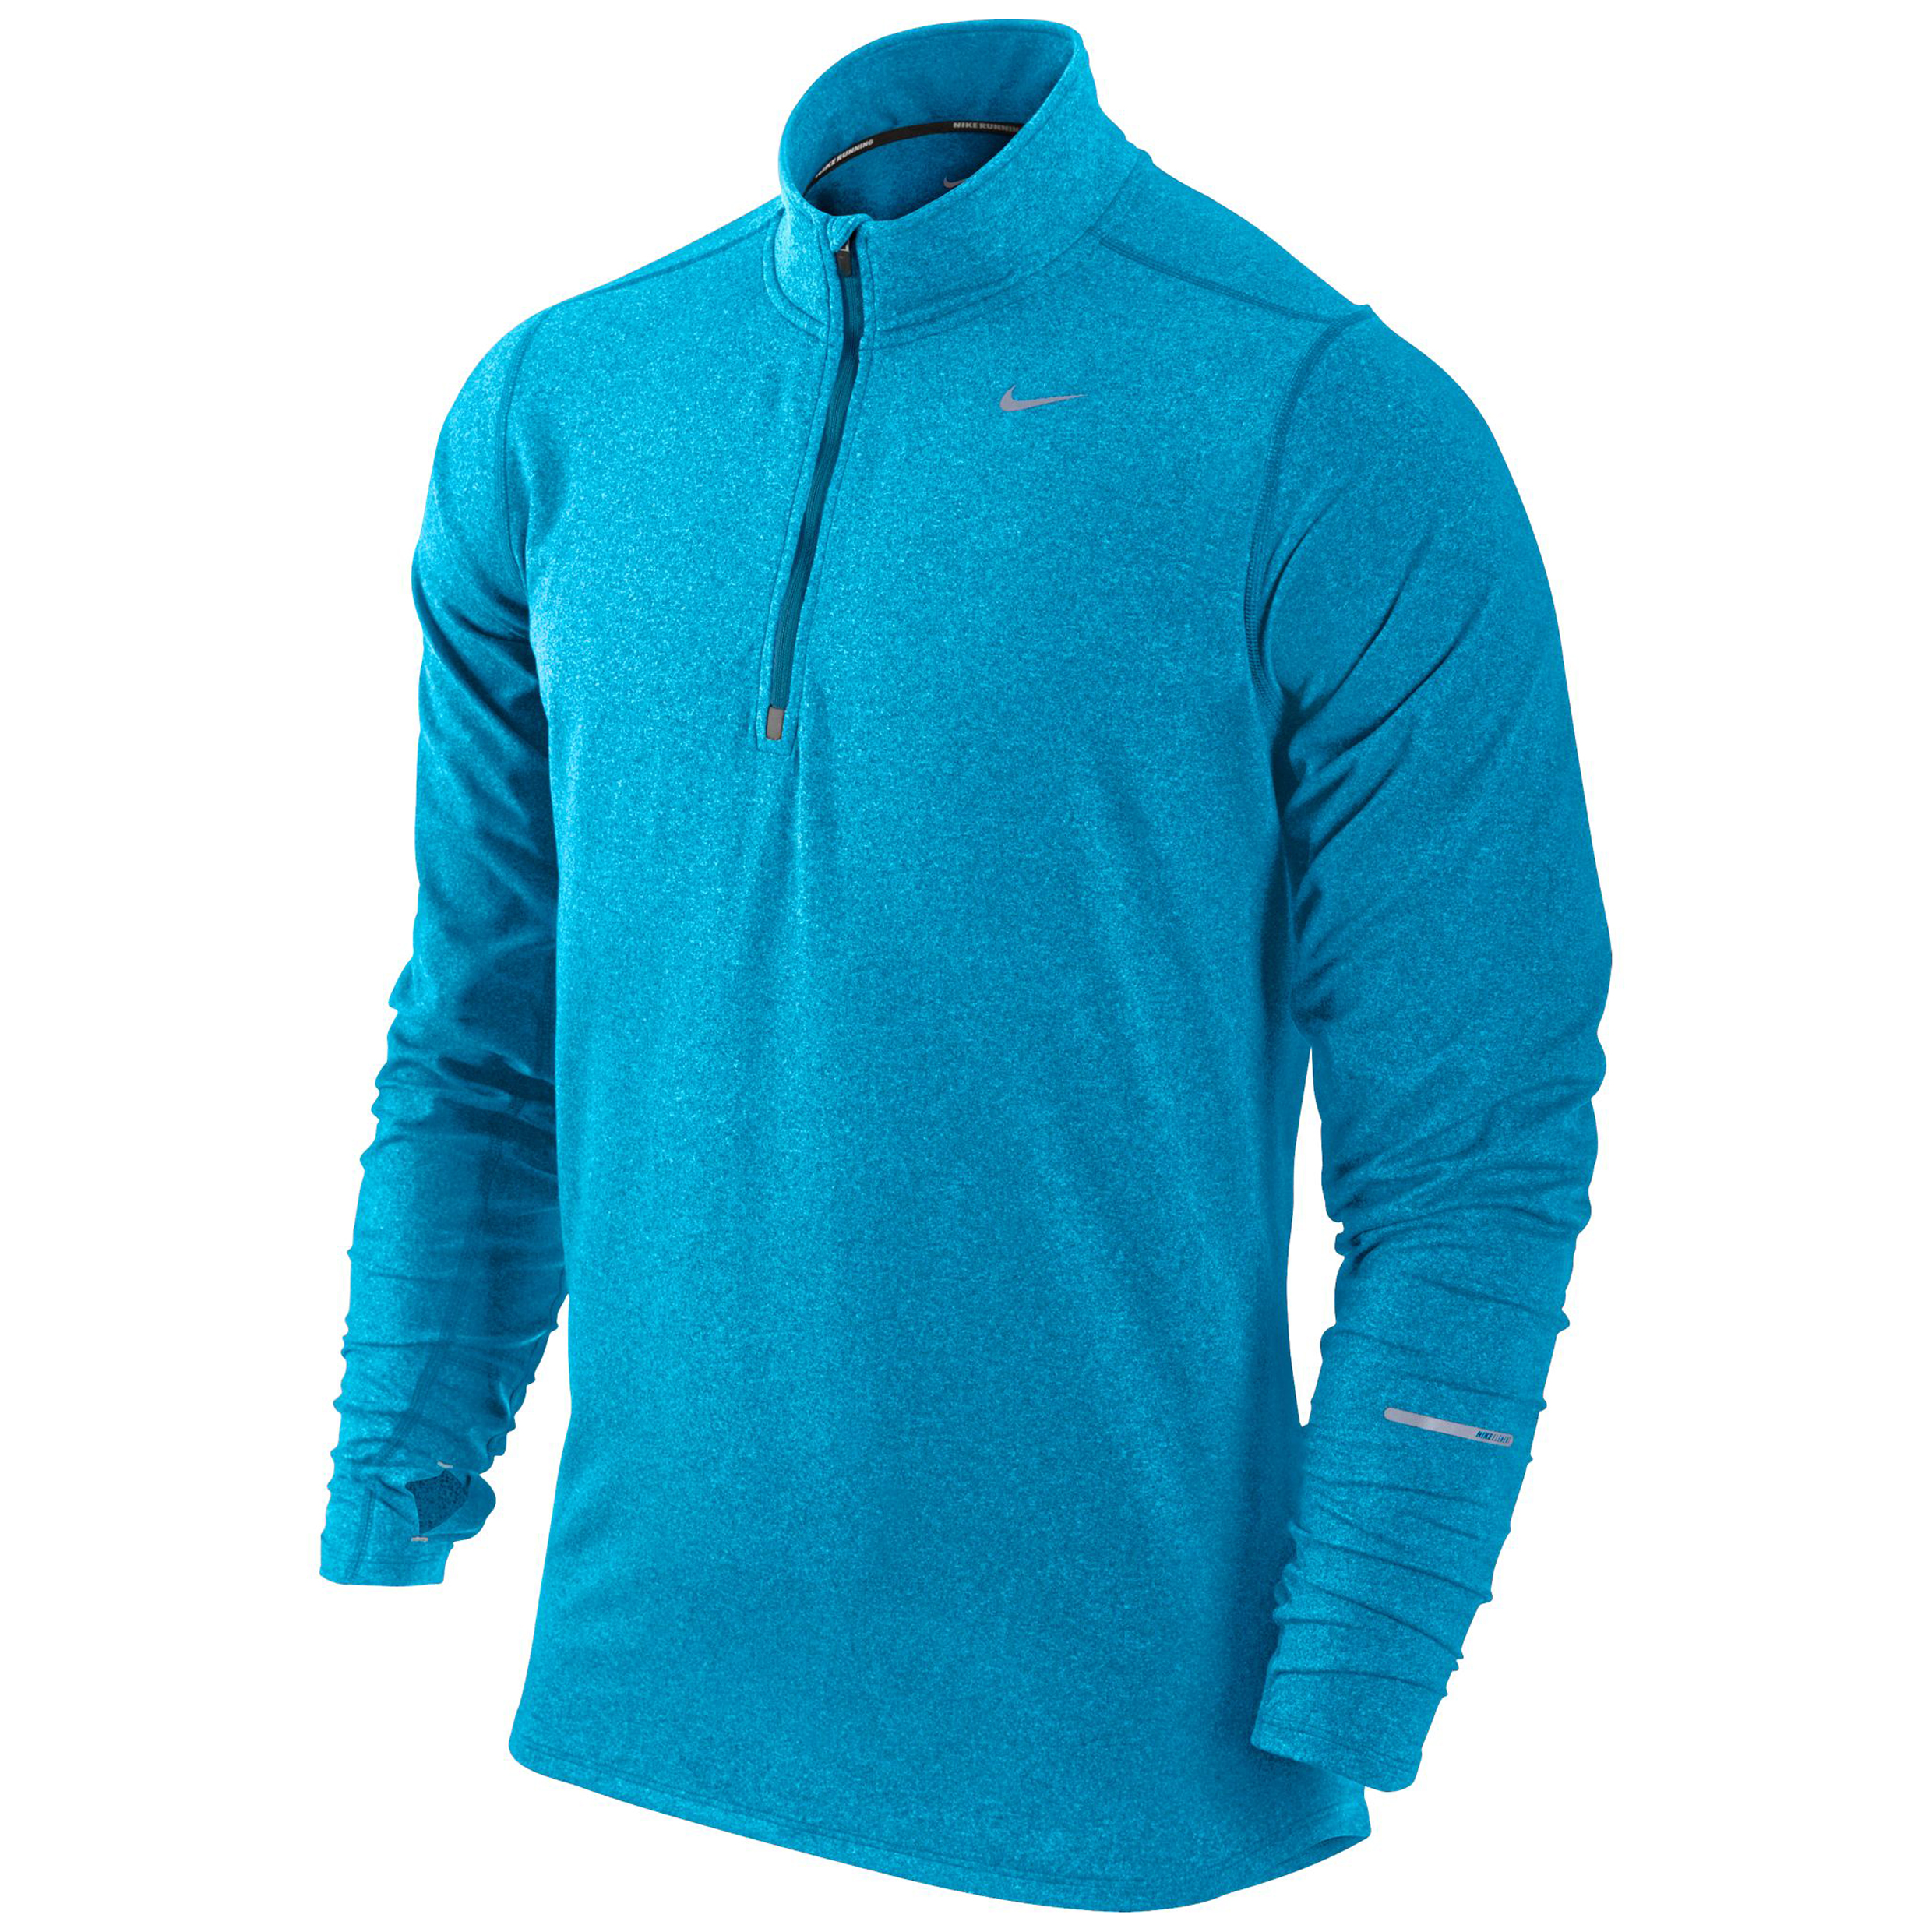 Nike Element HZ Top Blue